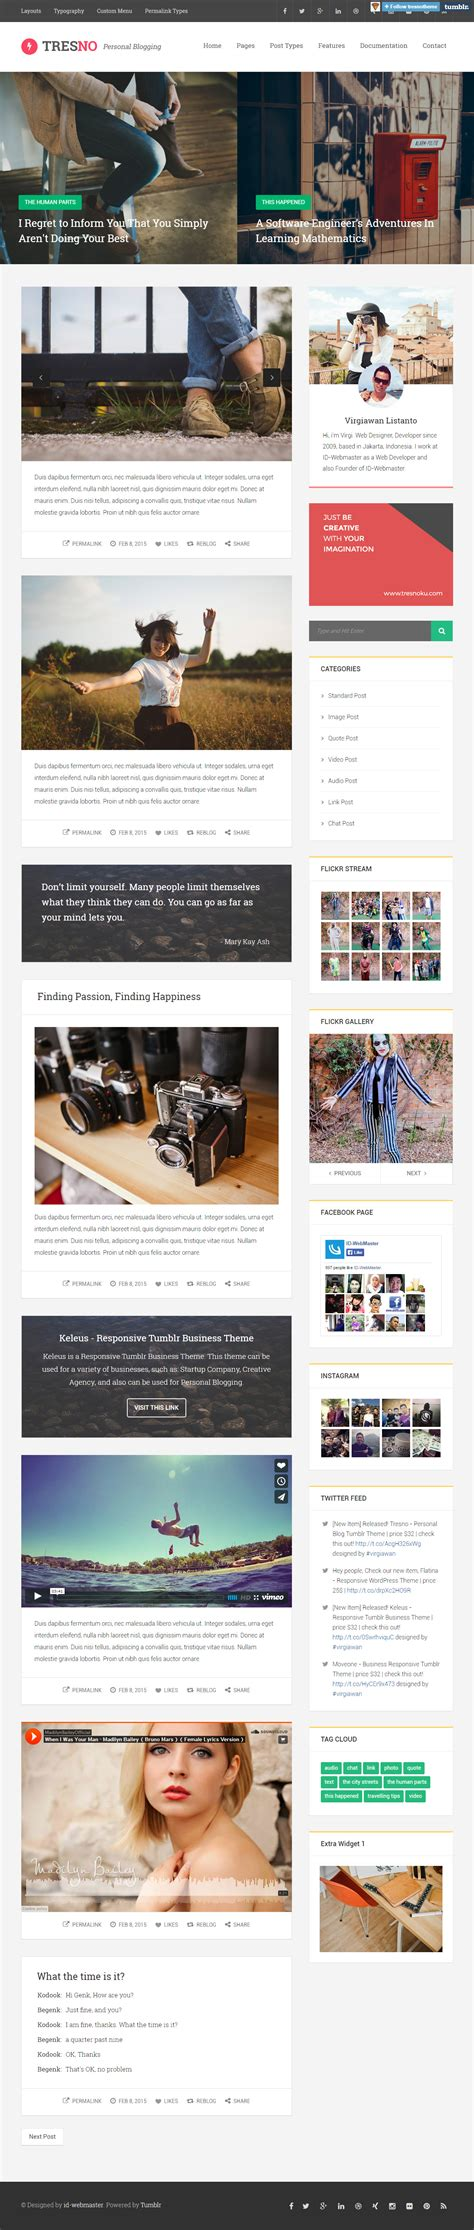 themes tumblr responsive 5 best responsive tumblr blog themes in 2015